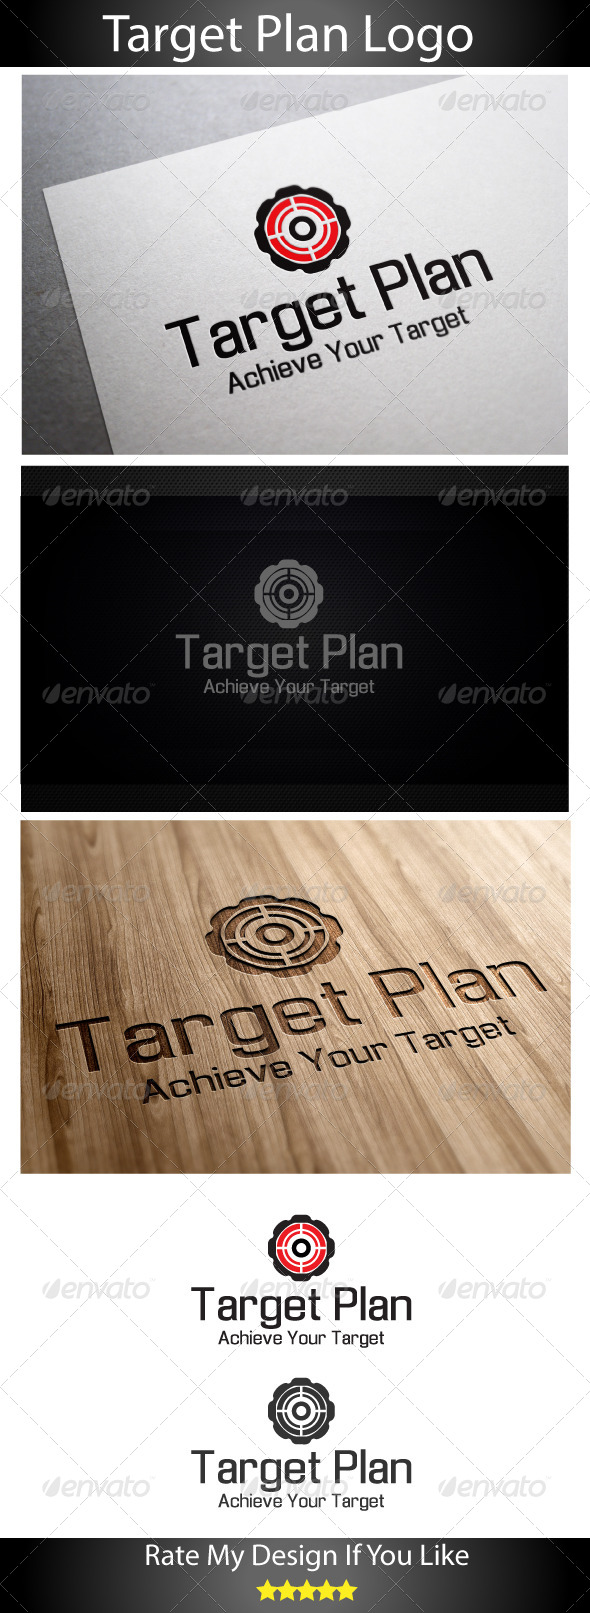 Global Target Plan - Vector Abstract